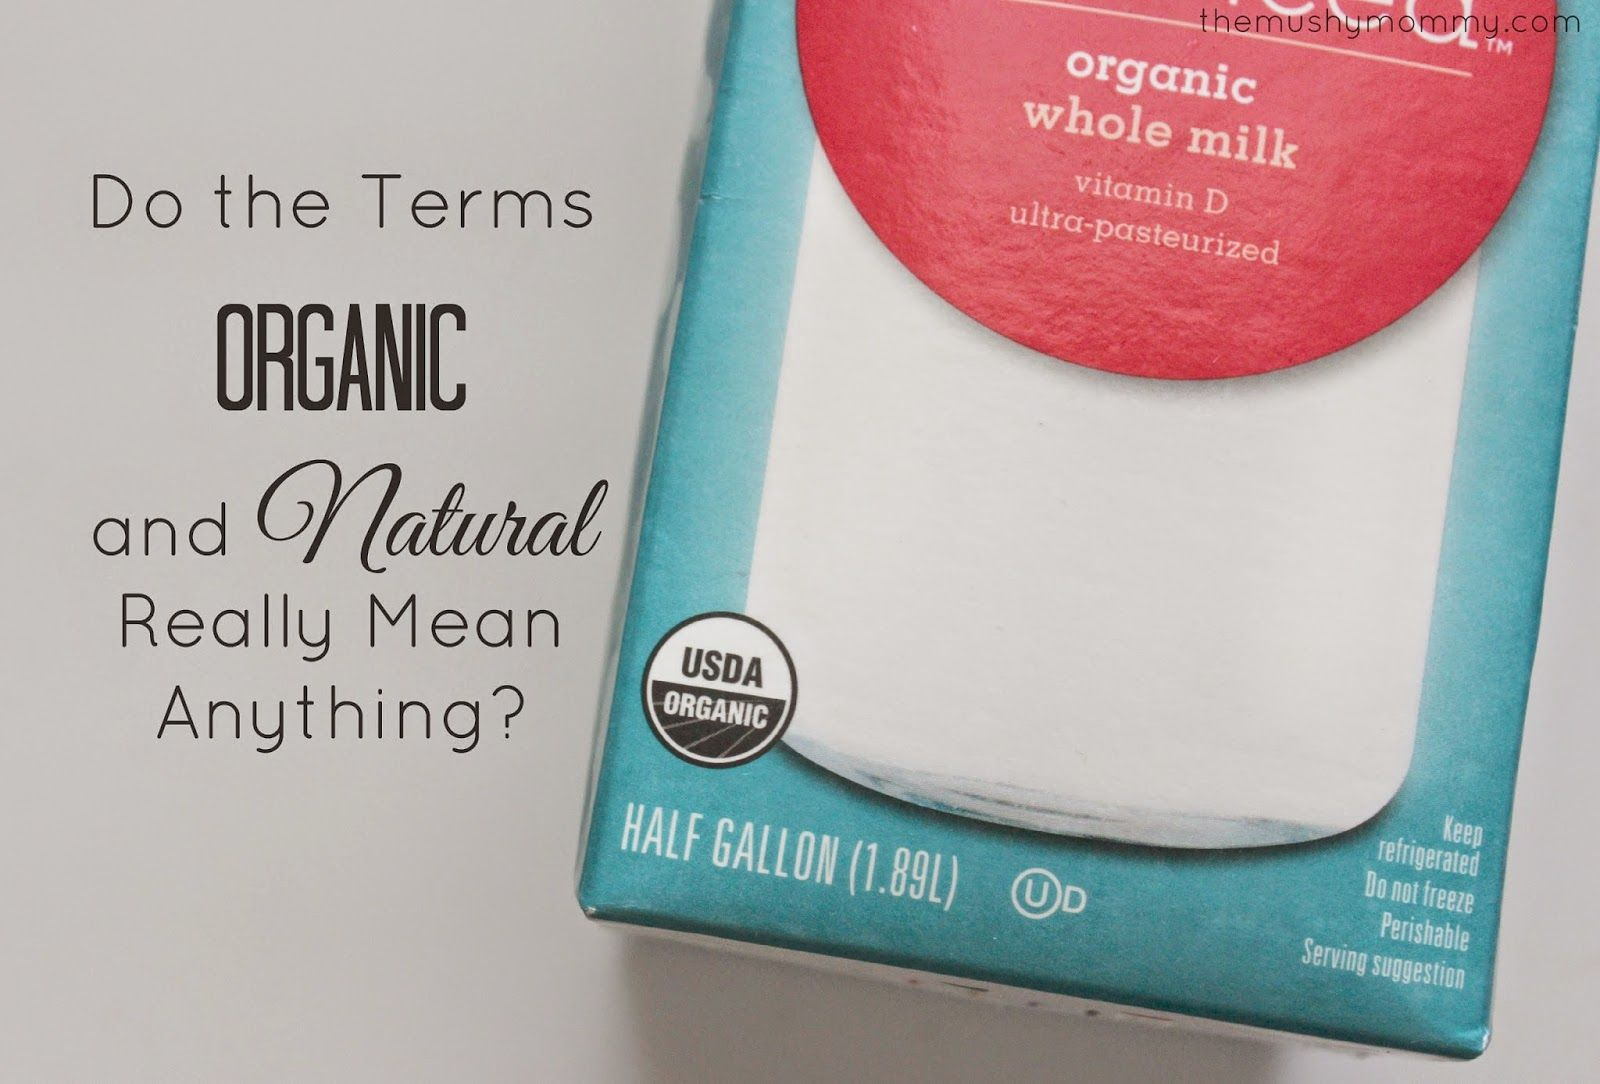 Do the Terms Organic and Natural Really Mean Anything?